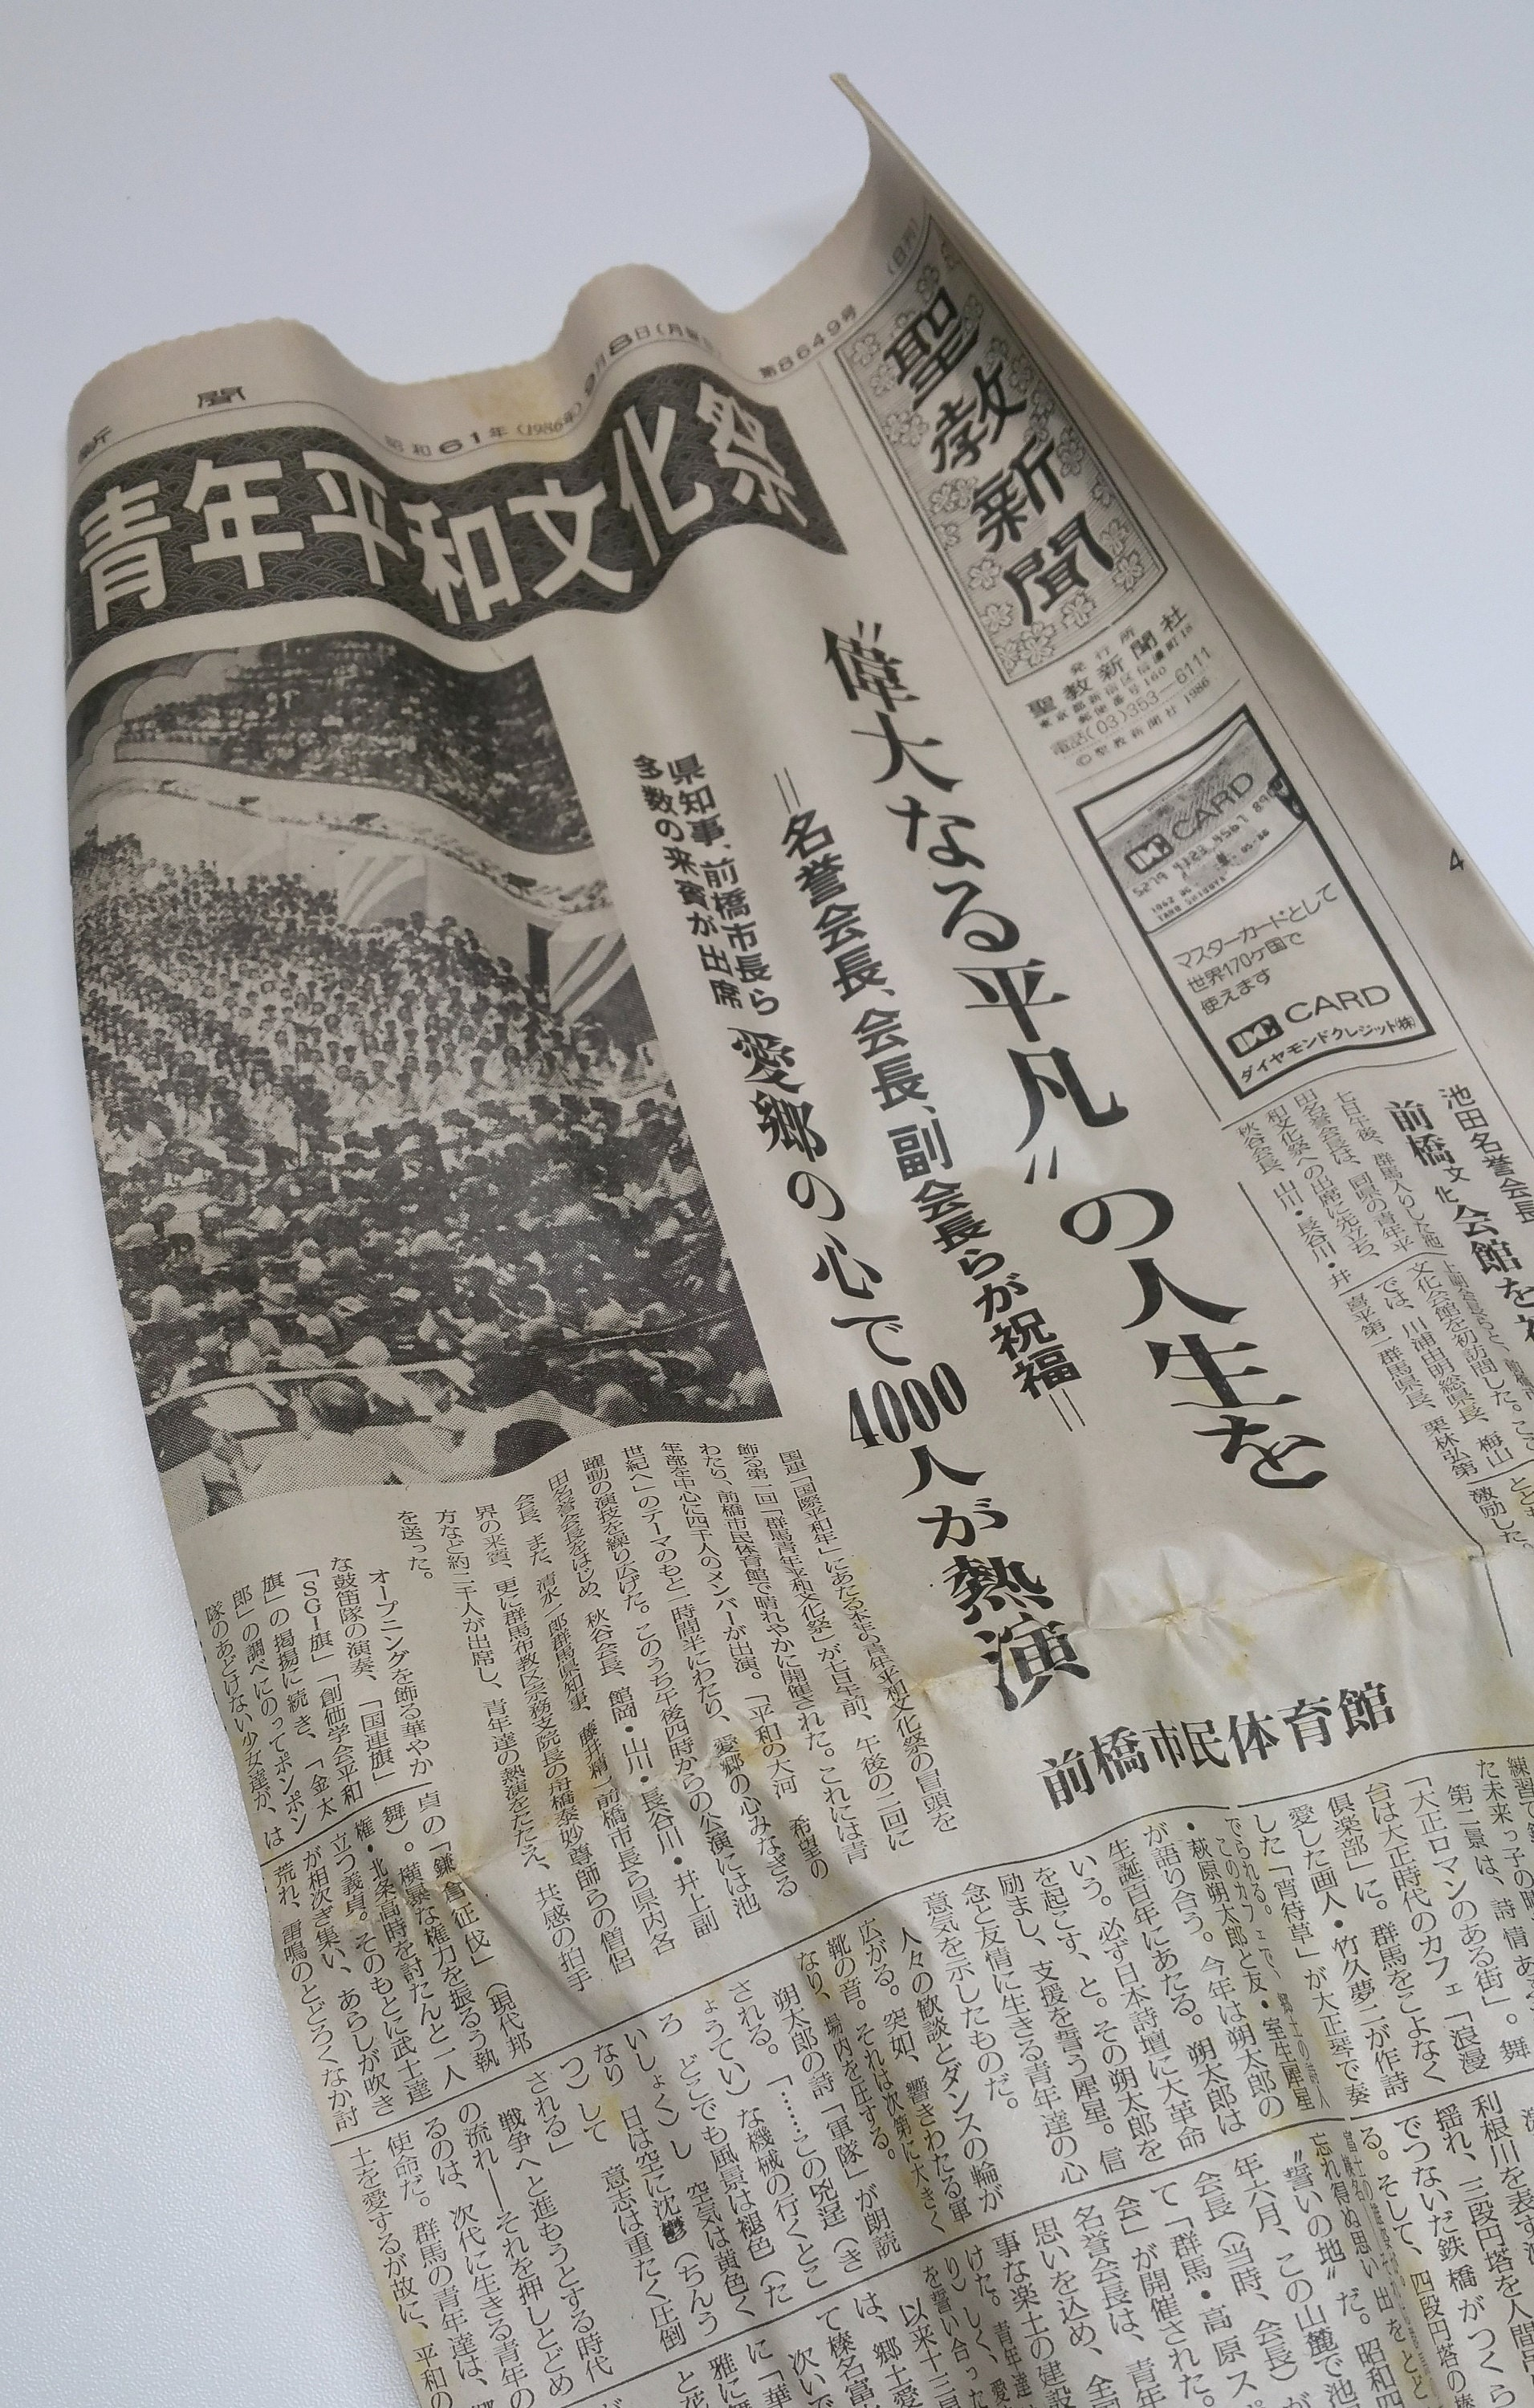 newspaper hidden inside tanmono bolt